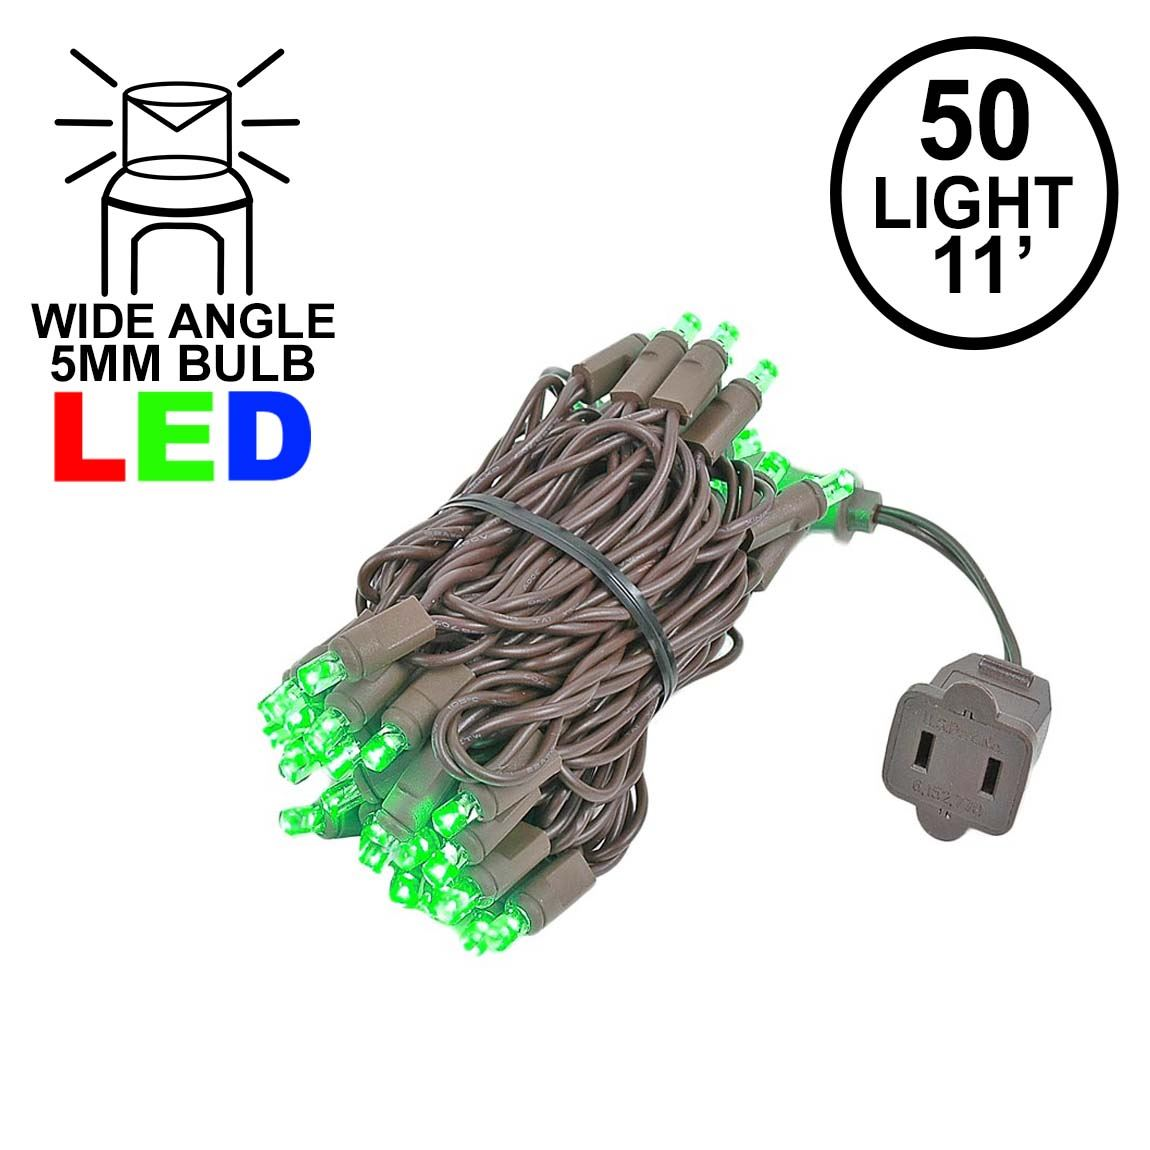 Picture of 50 LED Green LED Christmas Lights 11' Long on Brown Wire